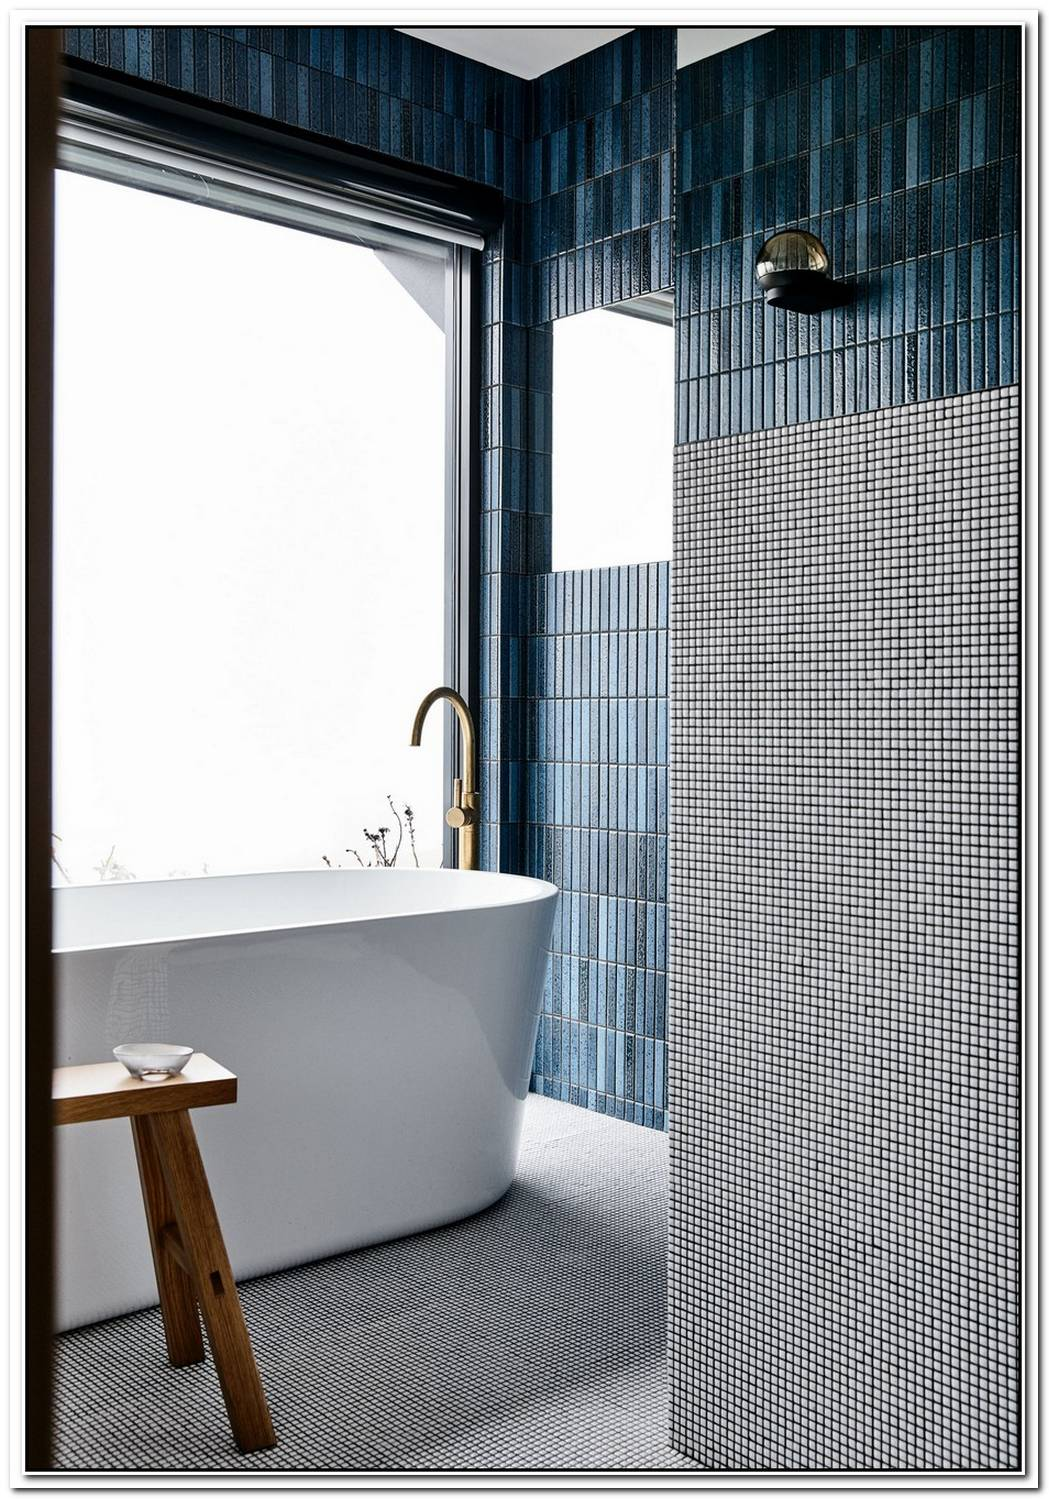 Check Out 15 Stunning Tile Design Ideas Just In Time For National Tile Day